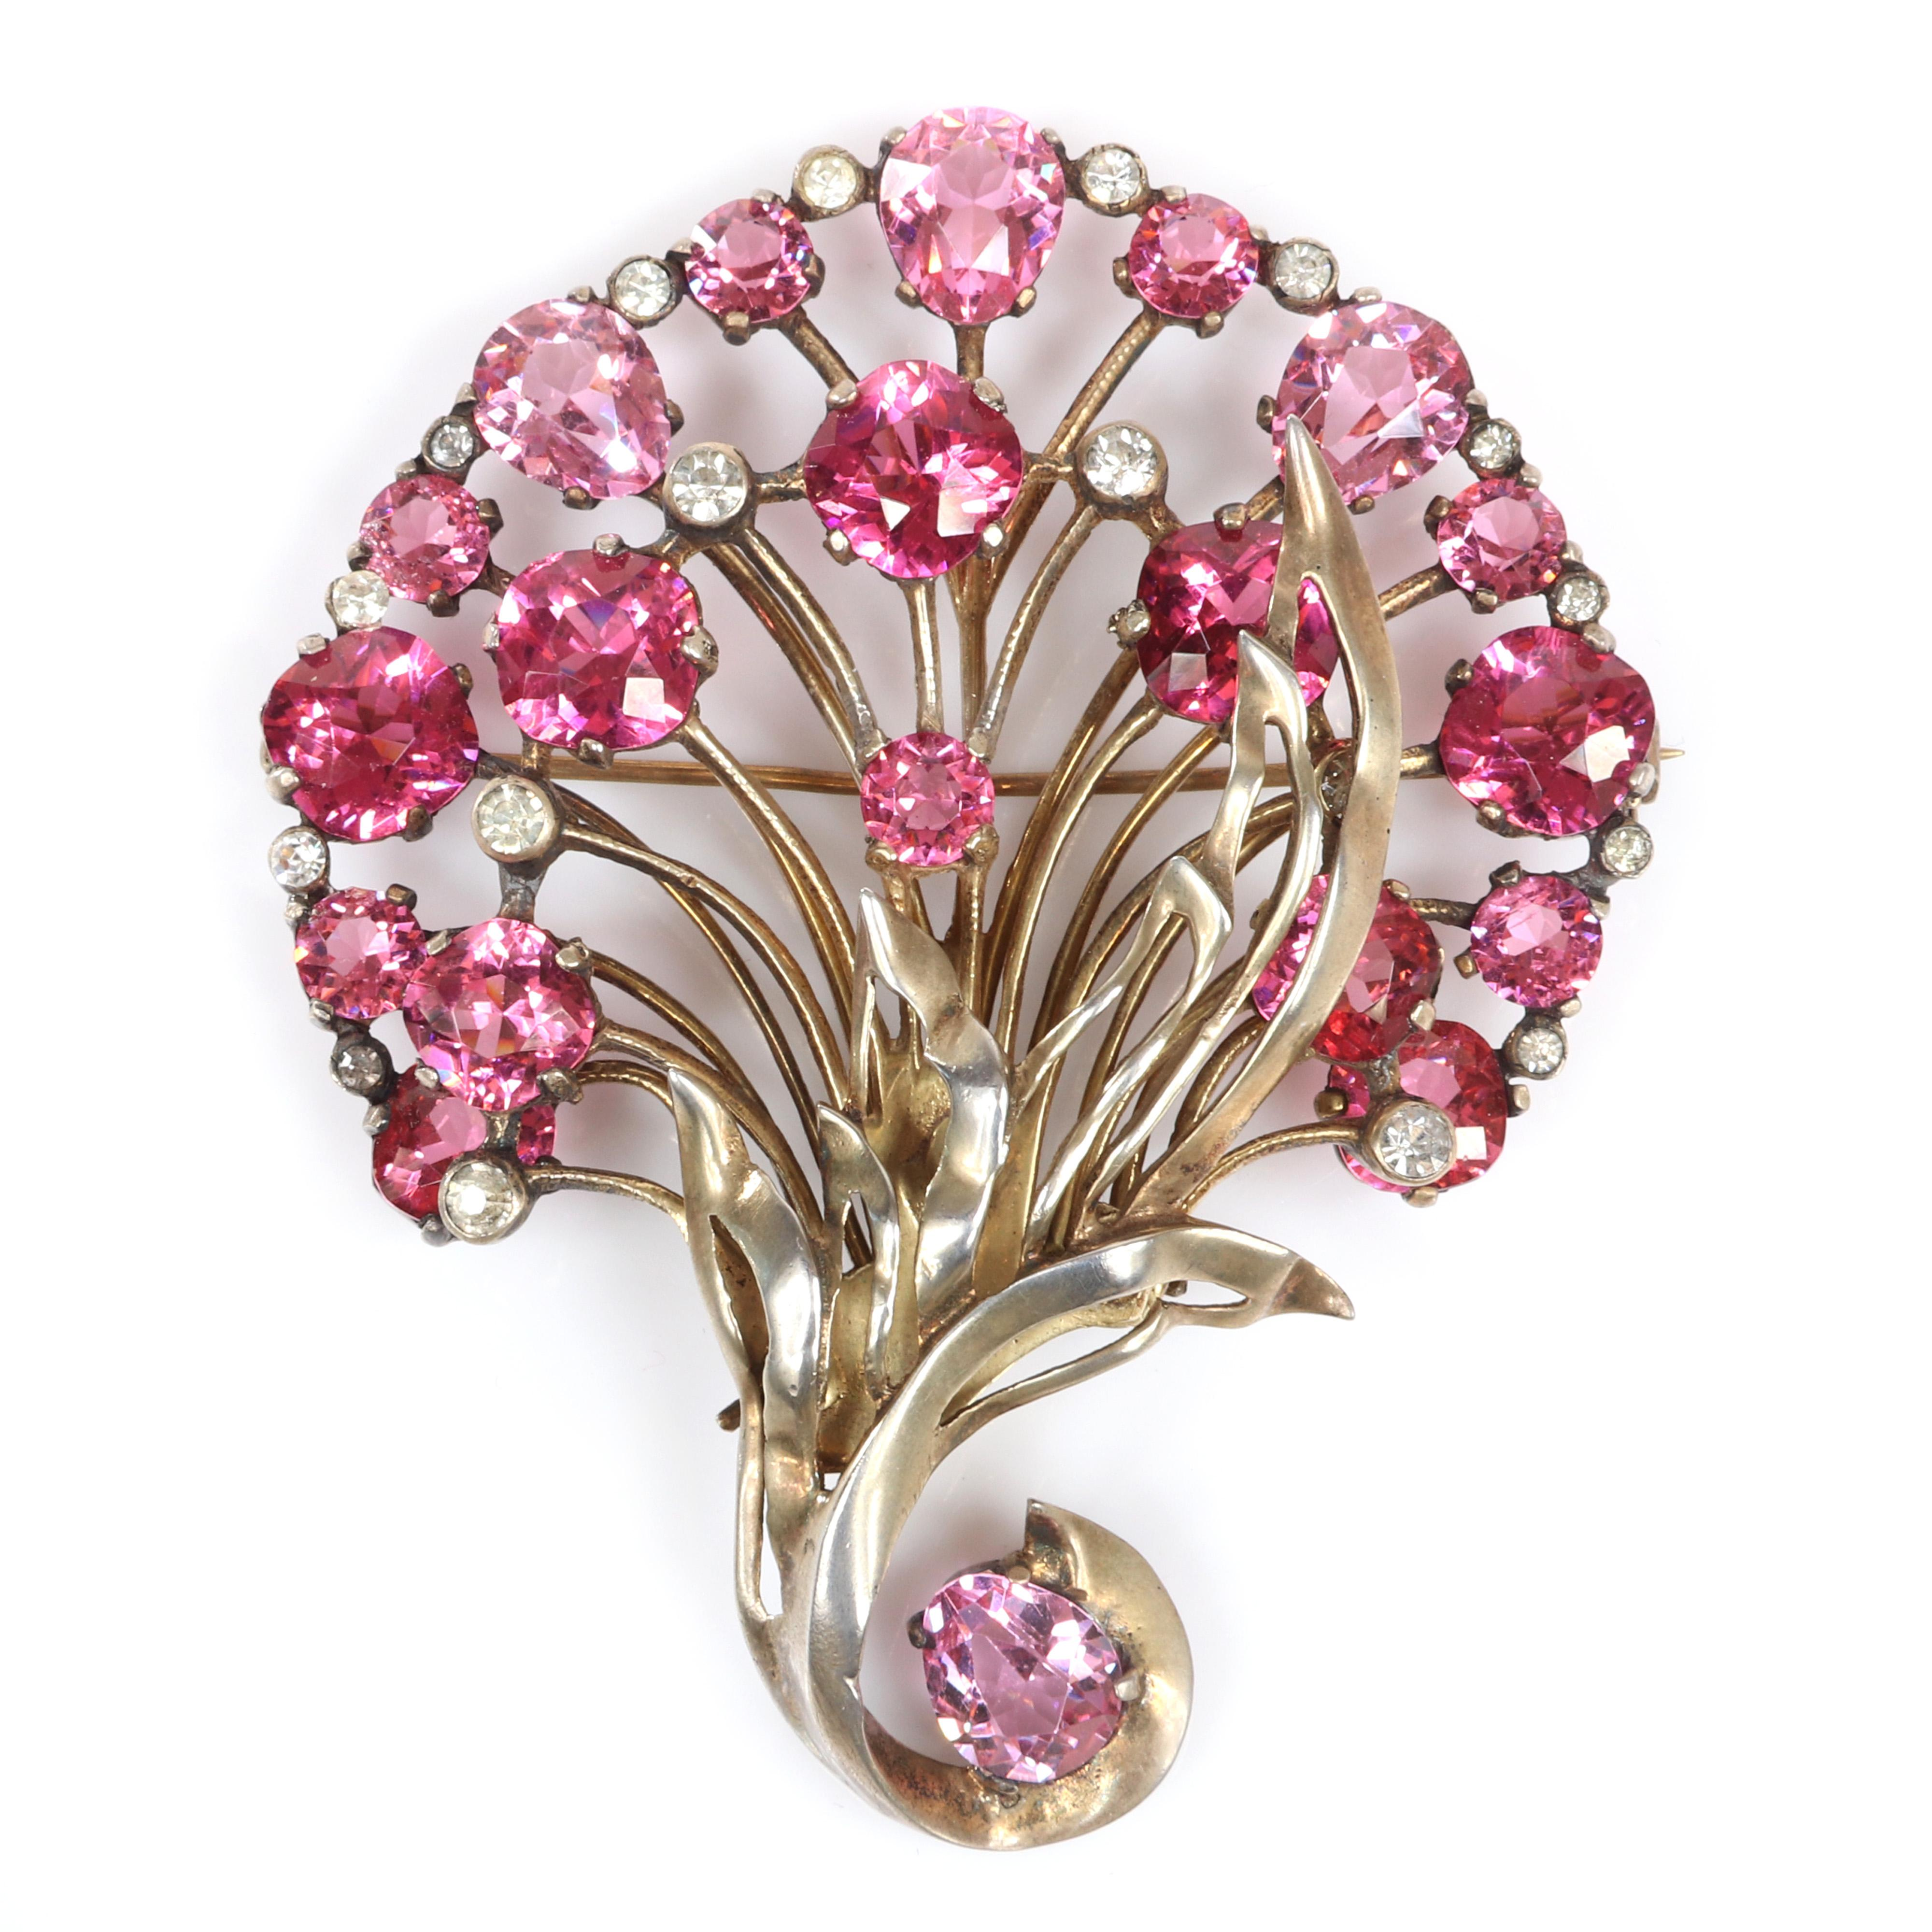 """Eisenberg Original sterling vermeil floral brooch with multi-hued pink stone blossoms in various sizes and cuts and clear bezel-set stones, 1940s. 3 3/8"""" x 2 3/4"""""""